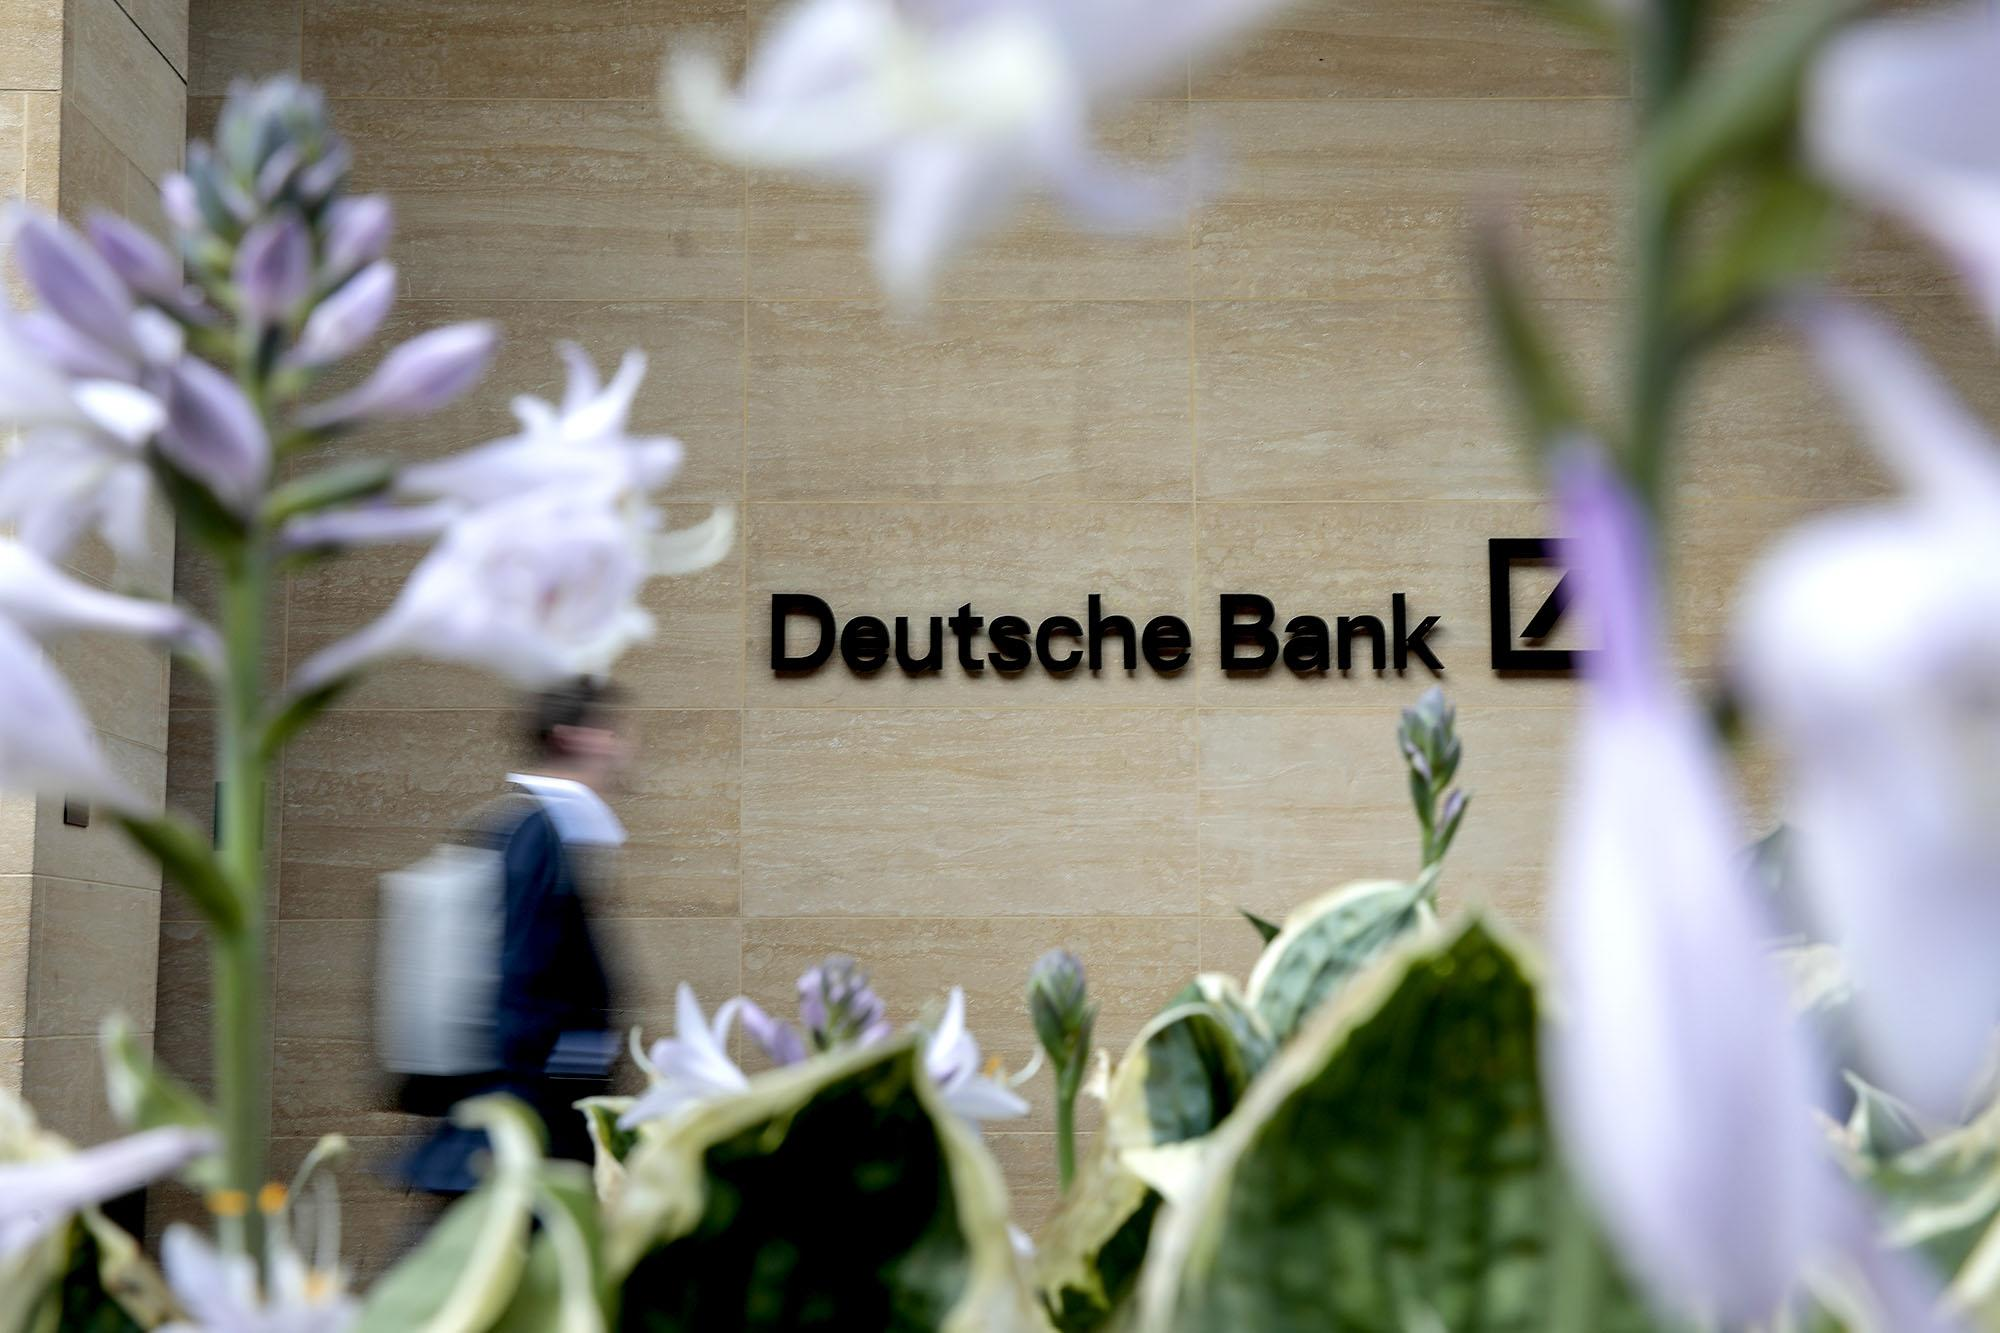 Deutsche Bank boss lashes out at staff for suit fitting amid layoffs